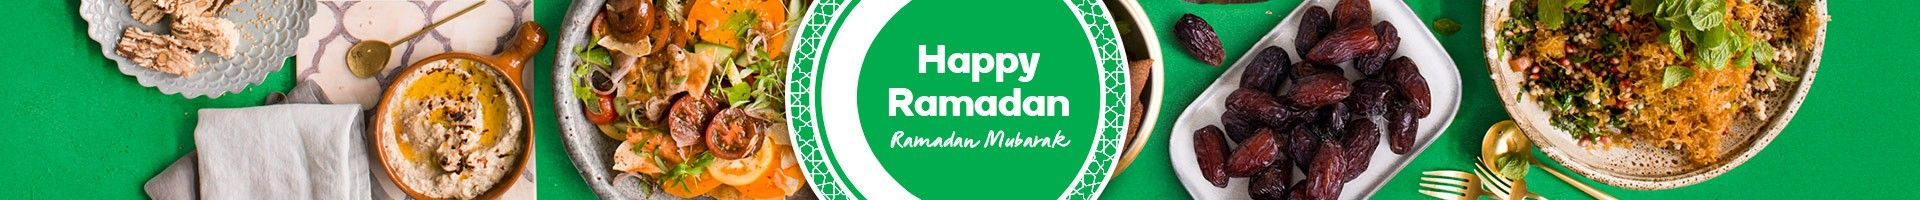 Woolworths Happy Ramadan 2020